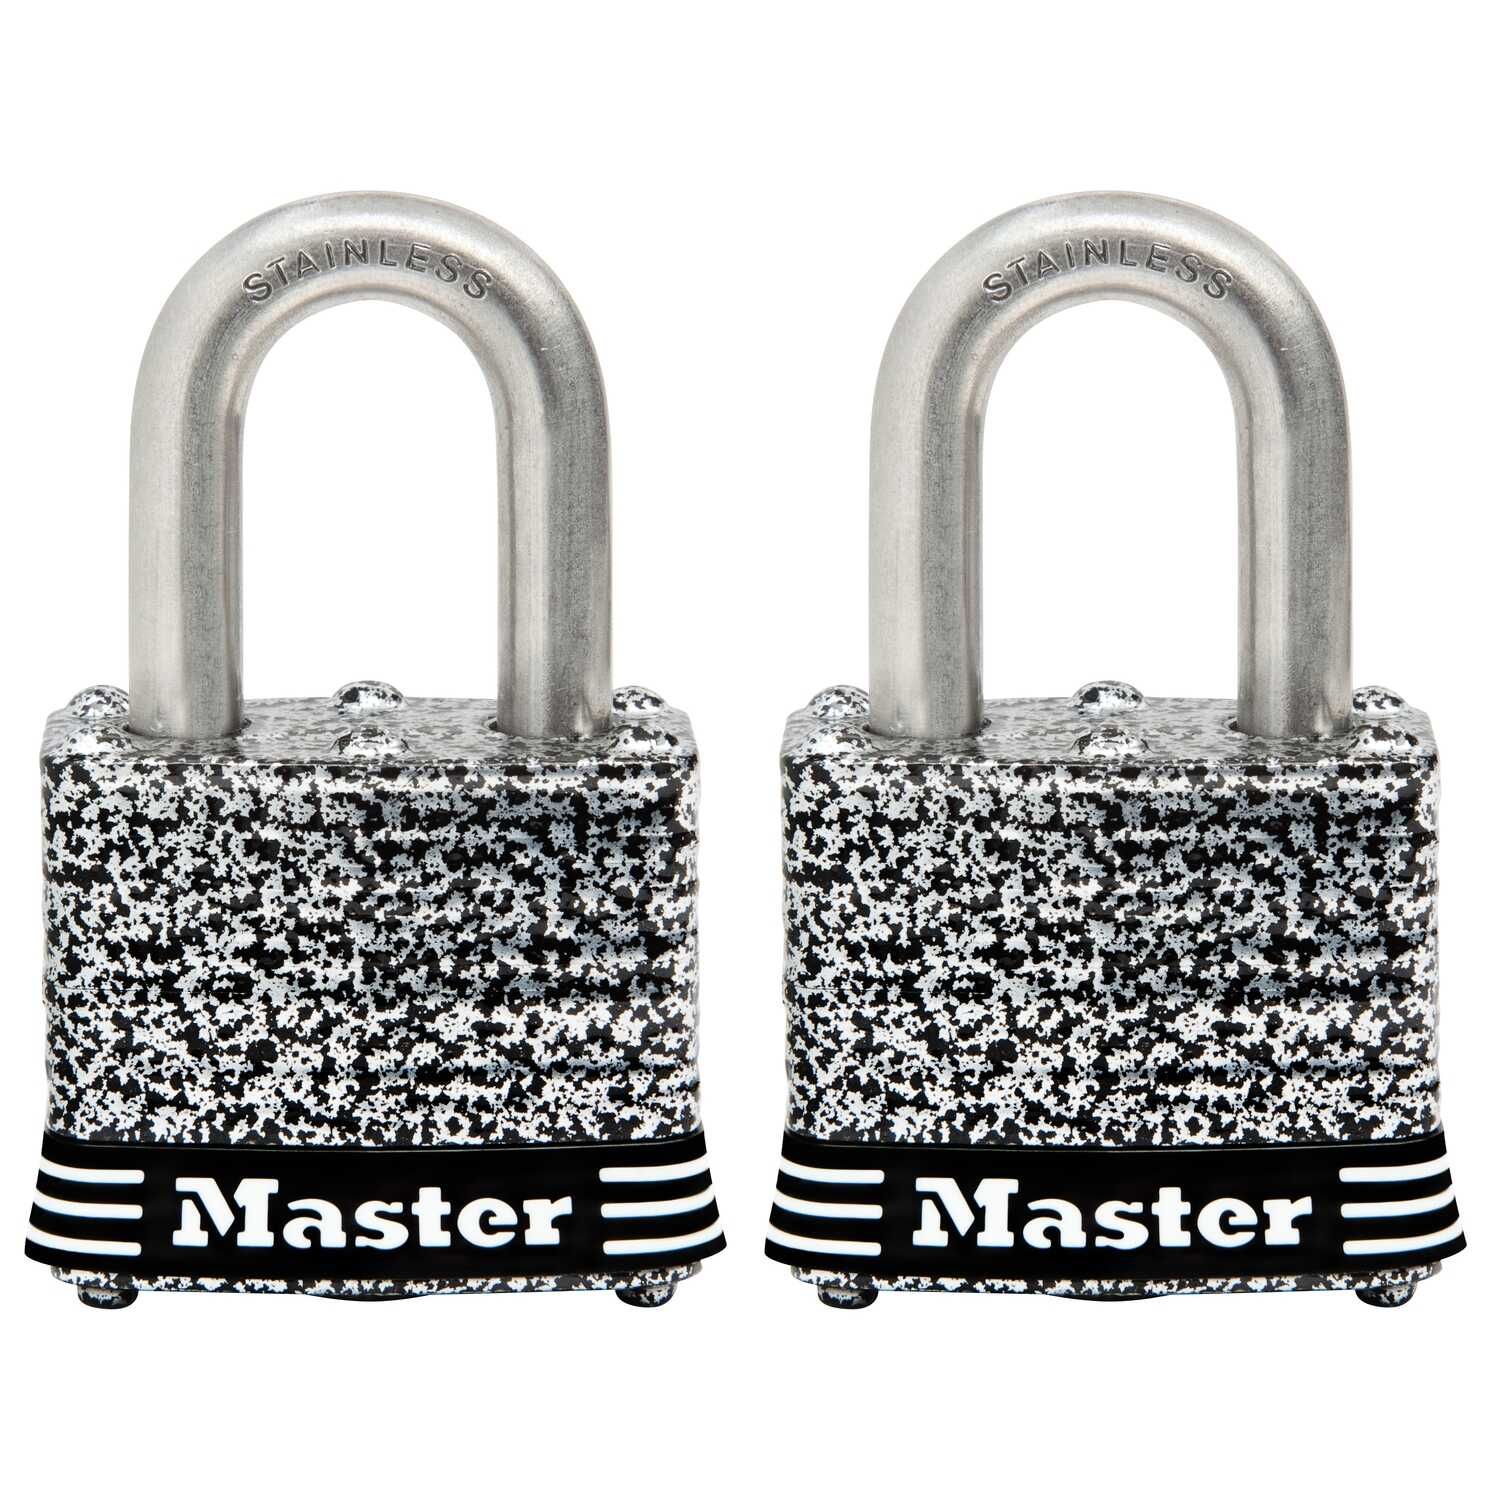 Master Lock  1.5 in. W Steel  4-Pin Tumbler  Laminated Padlock  2 pk Keyed Alike